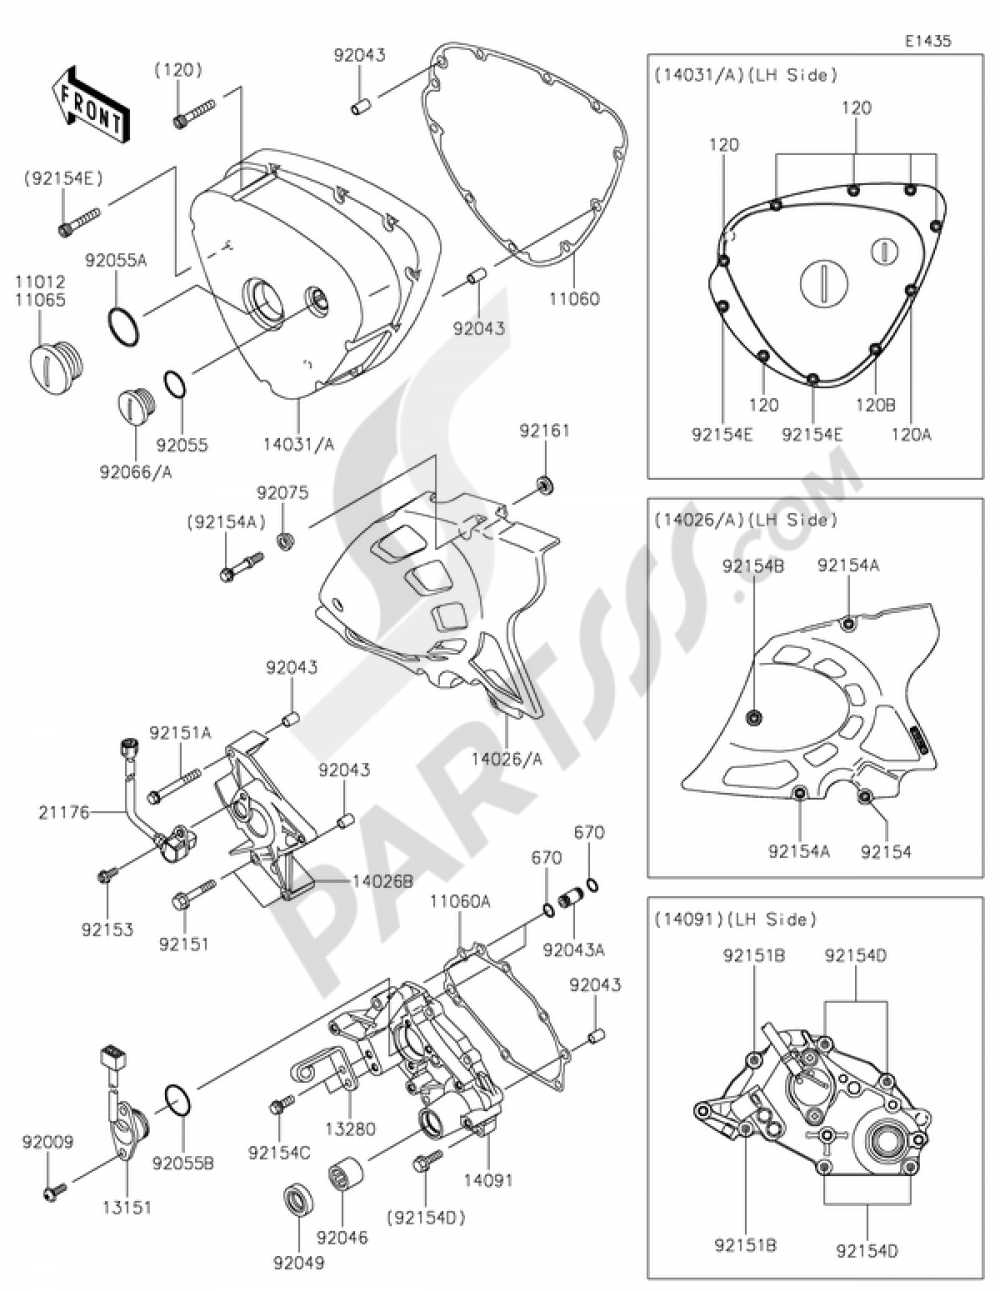 Kawasaki W800 Diagram Trusted Wiring Left Engine Covers 2015 Motorcycles